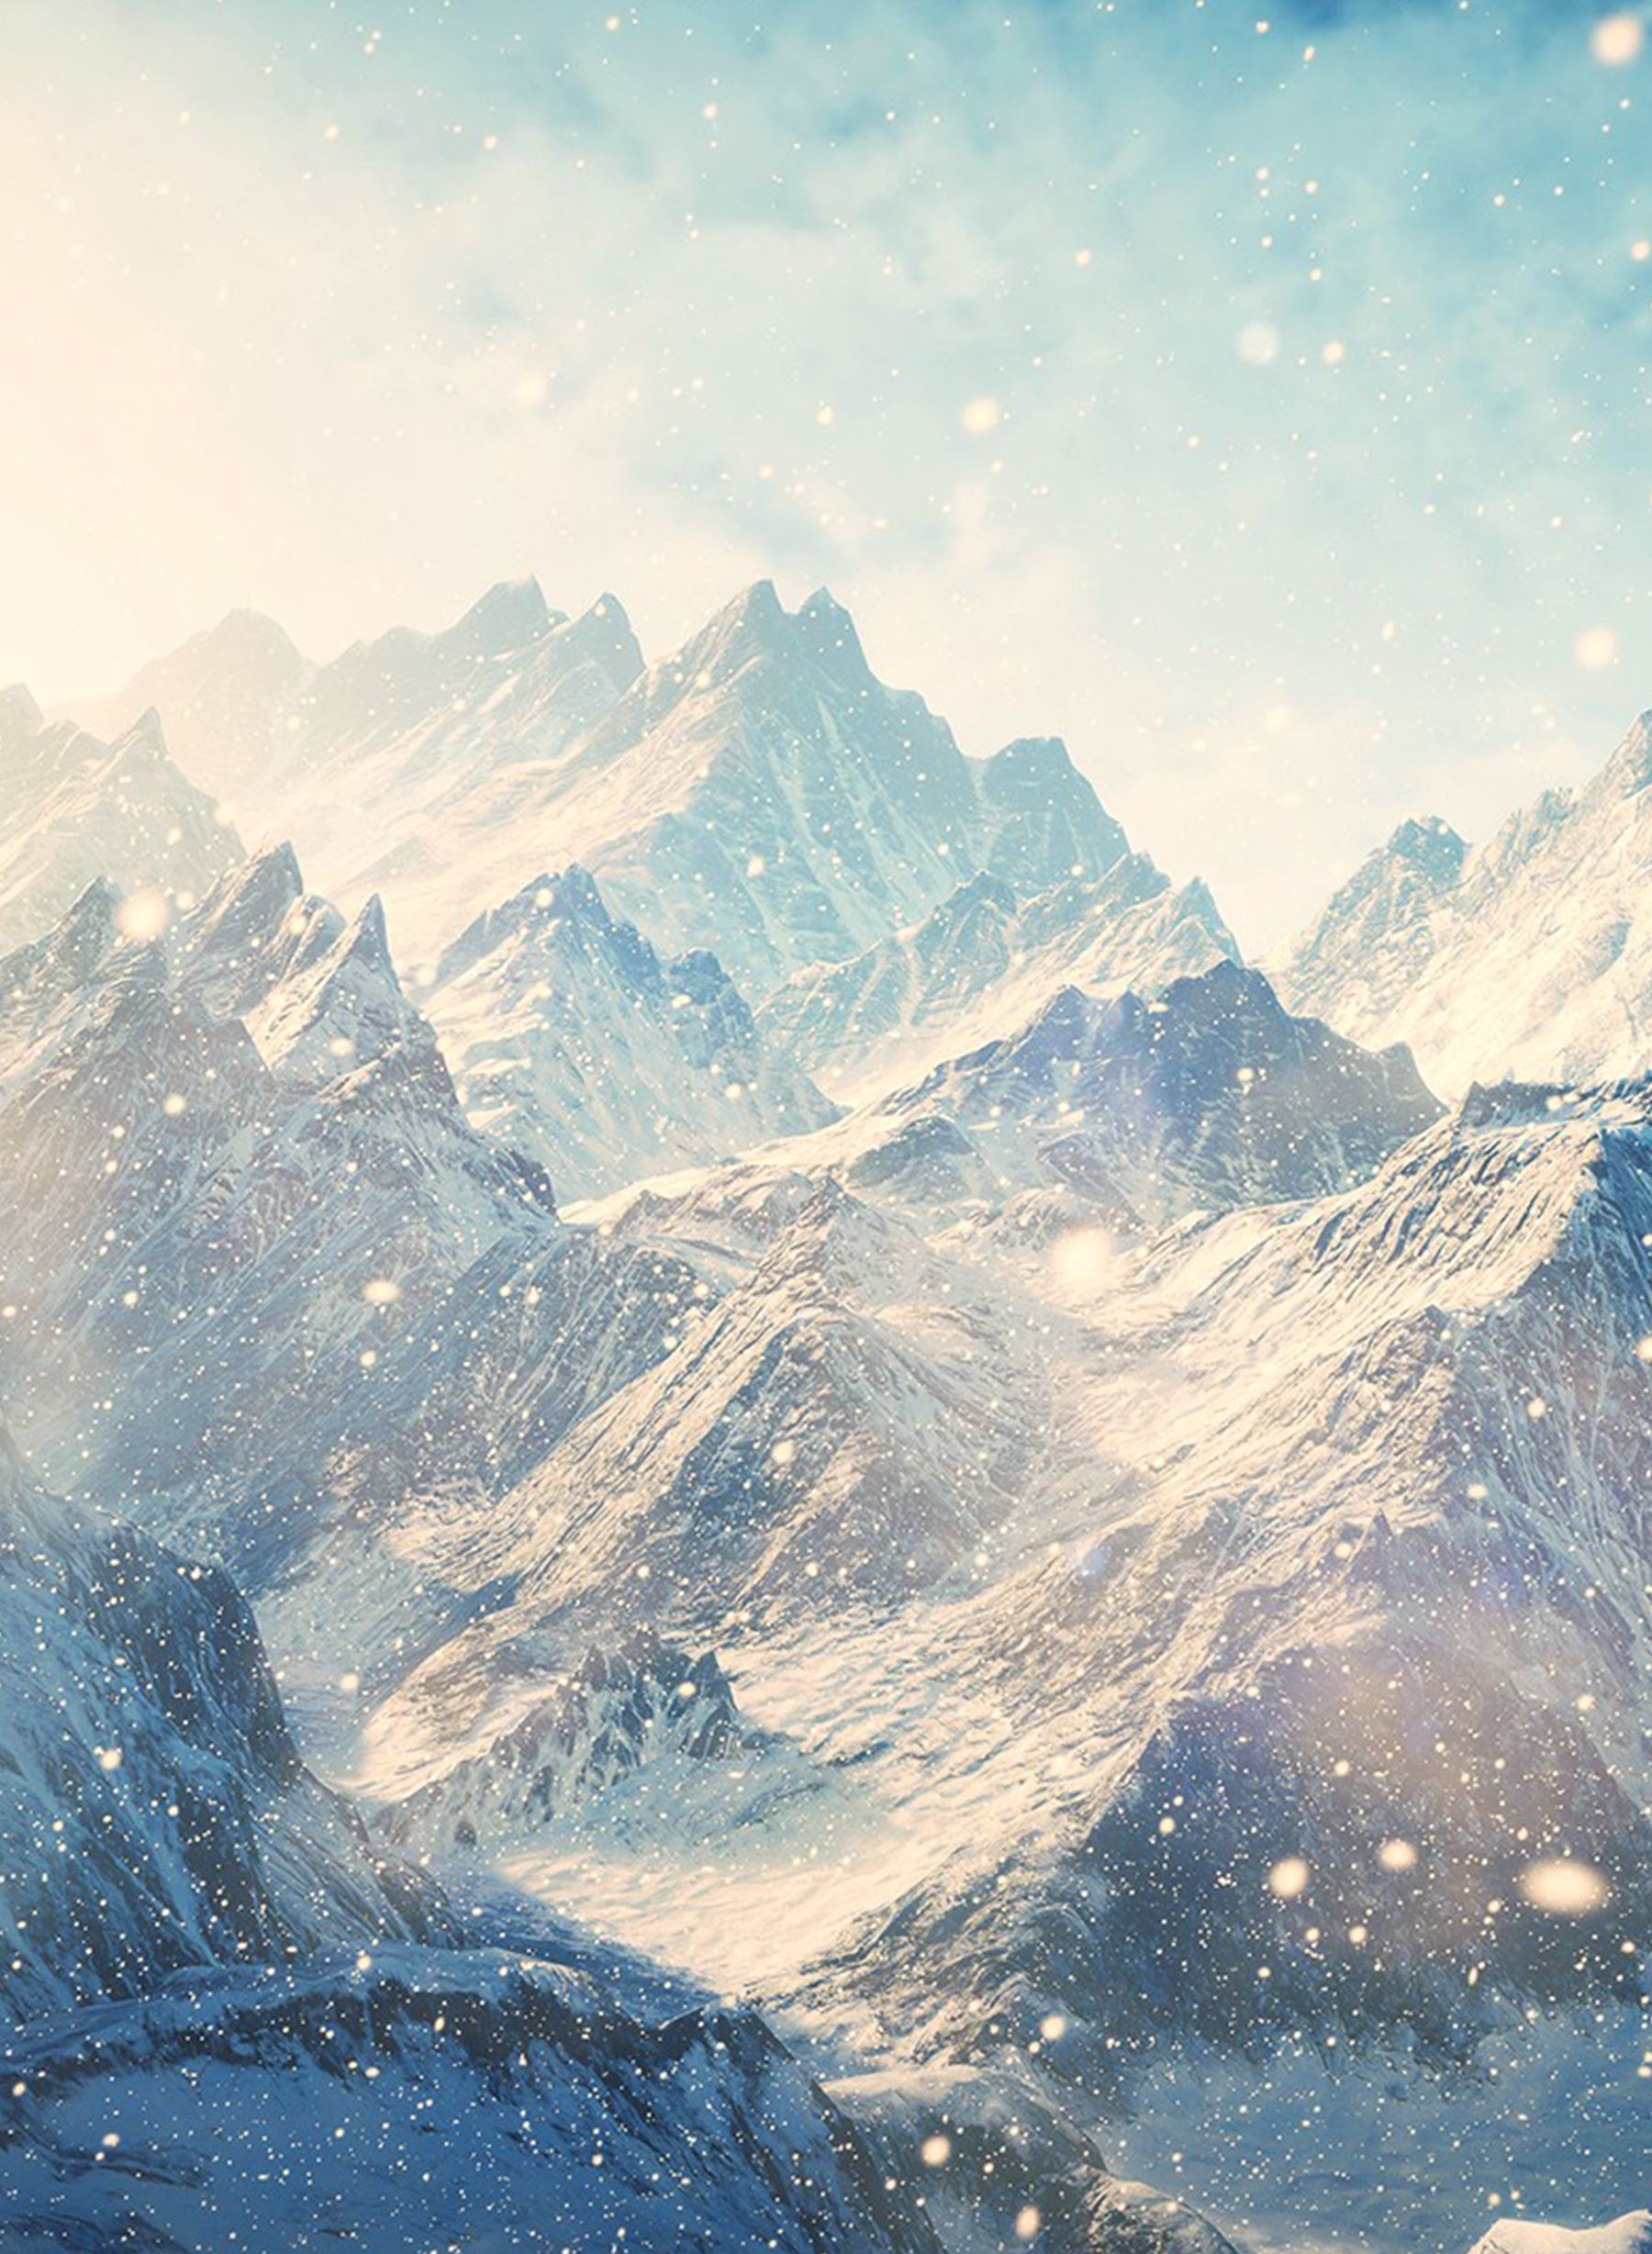 Snow White Mountain Wallpaper Mobile Vertical Iphone 5s Wallpaper Winter Wallpaper Mountain Wallpaper